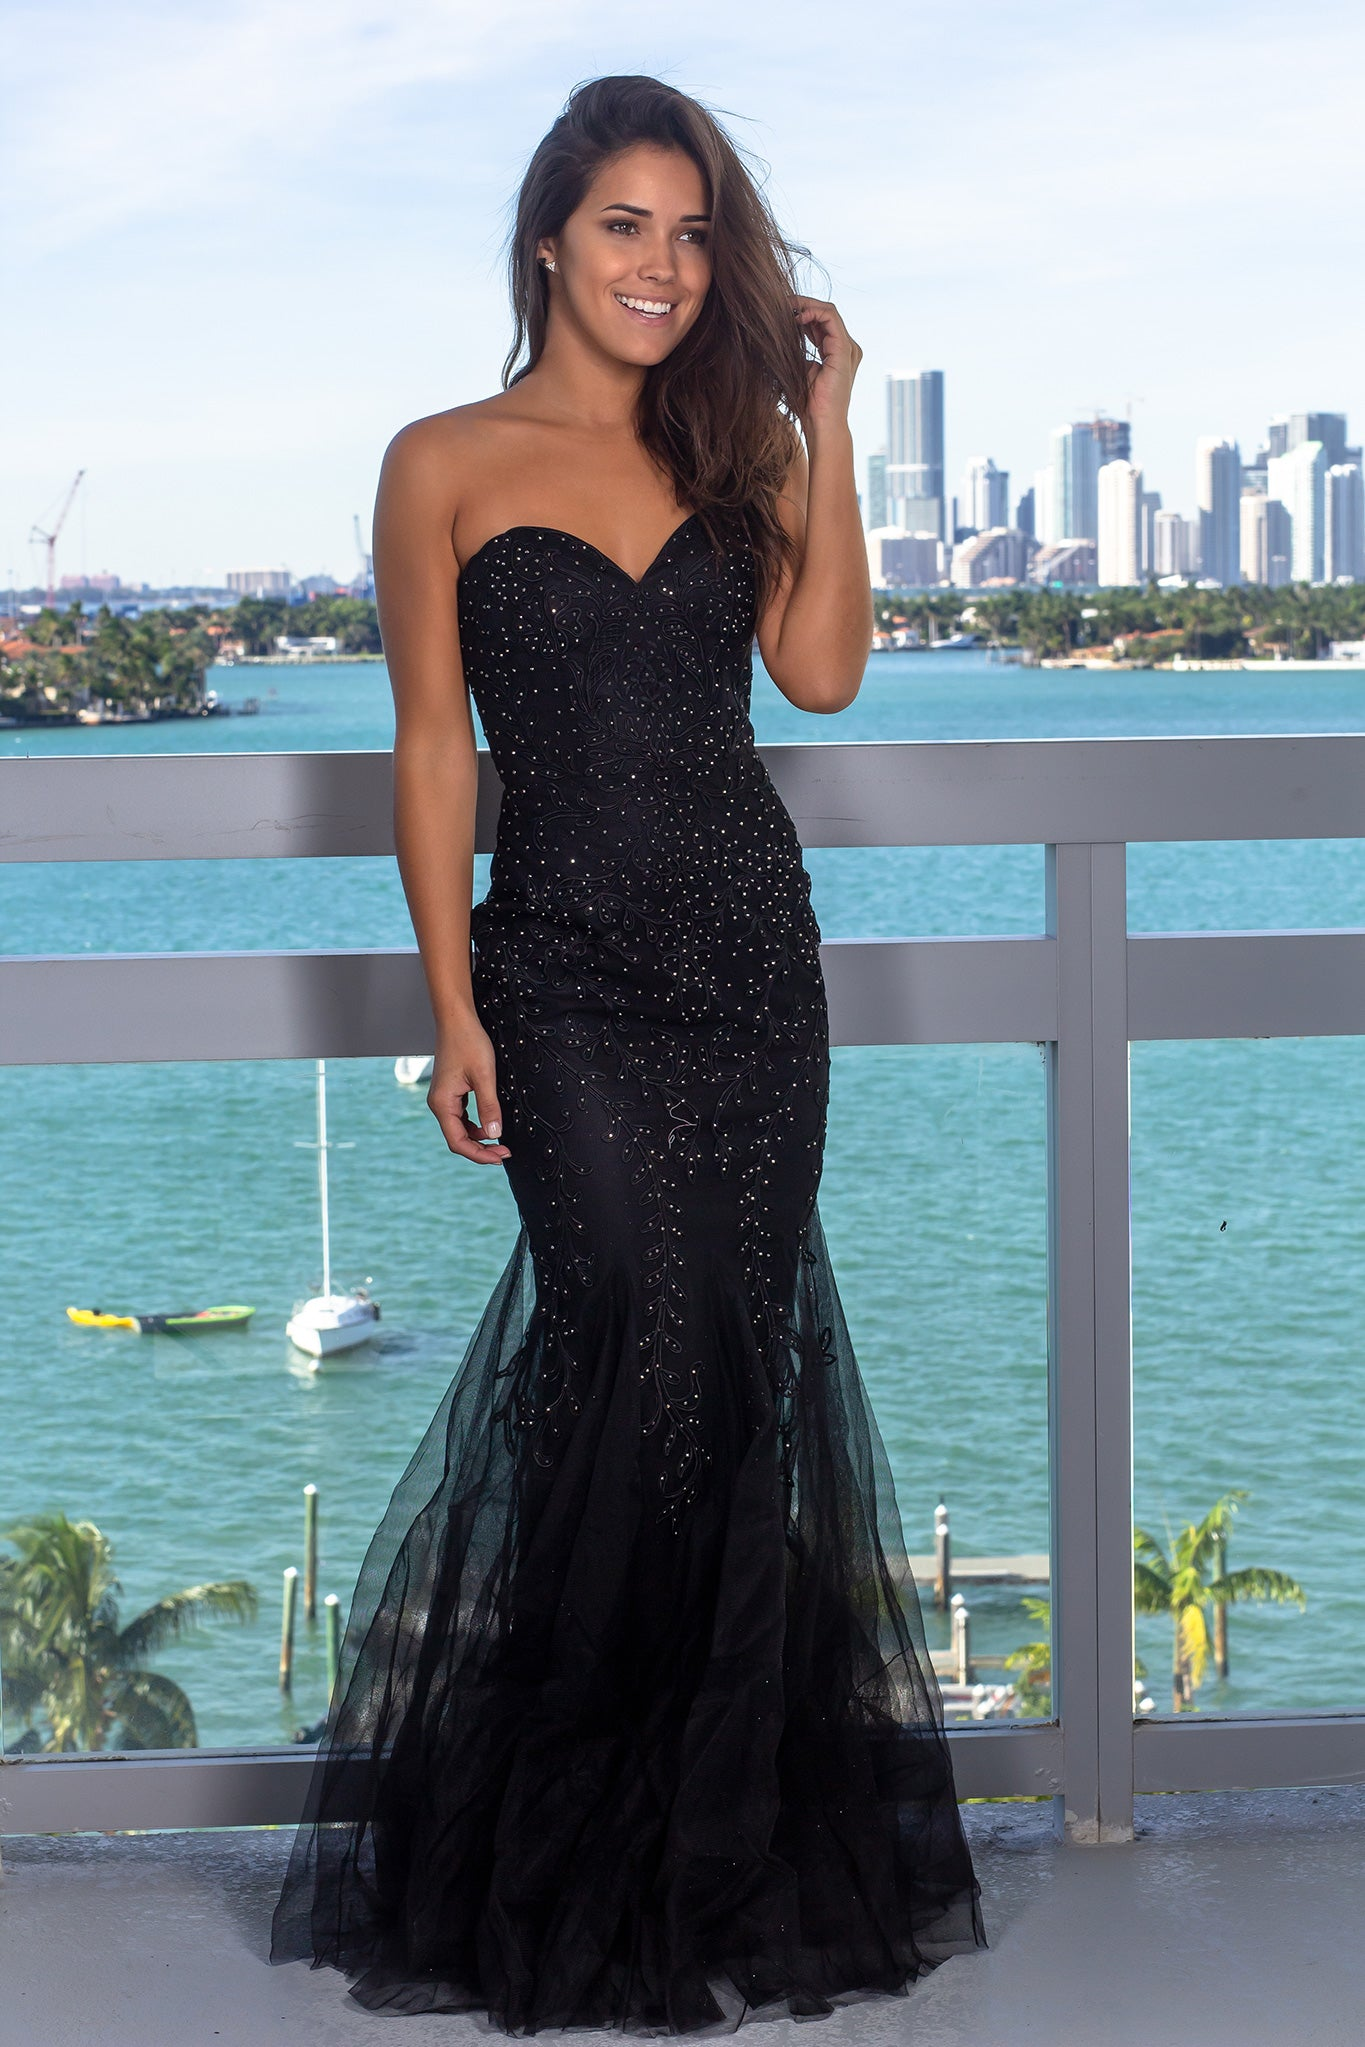 Black Strapless Tulle Maxi Dress